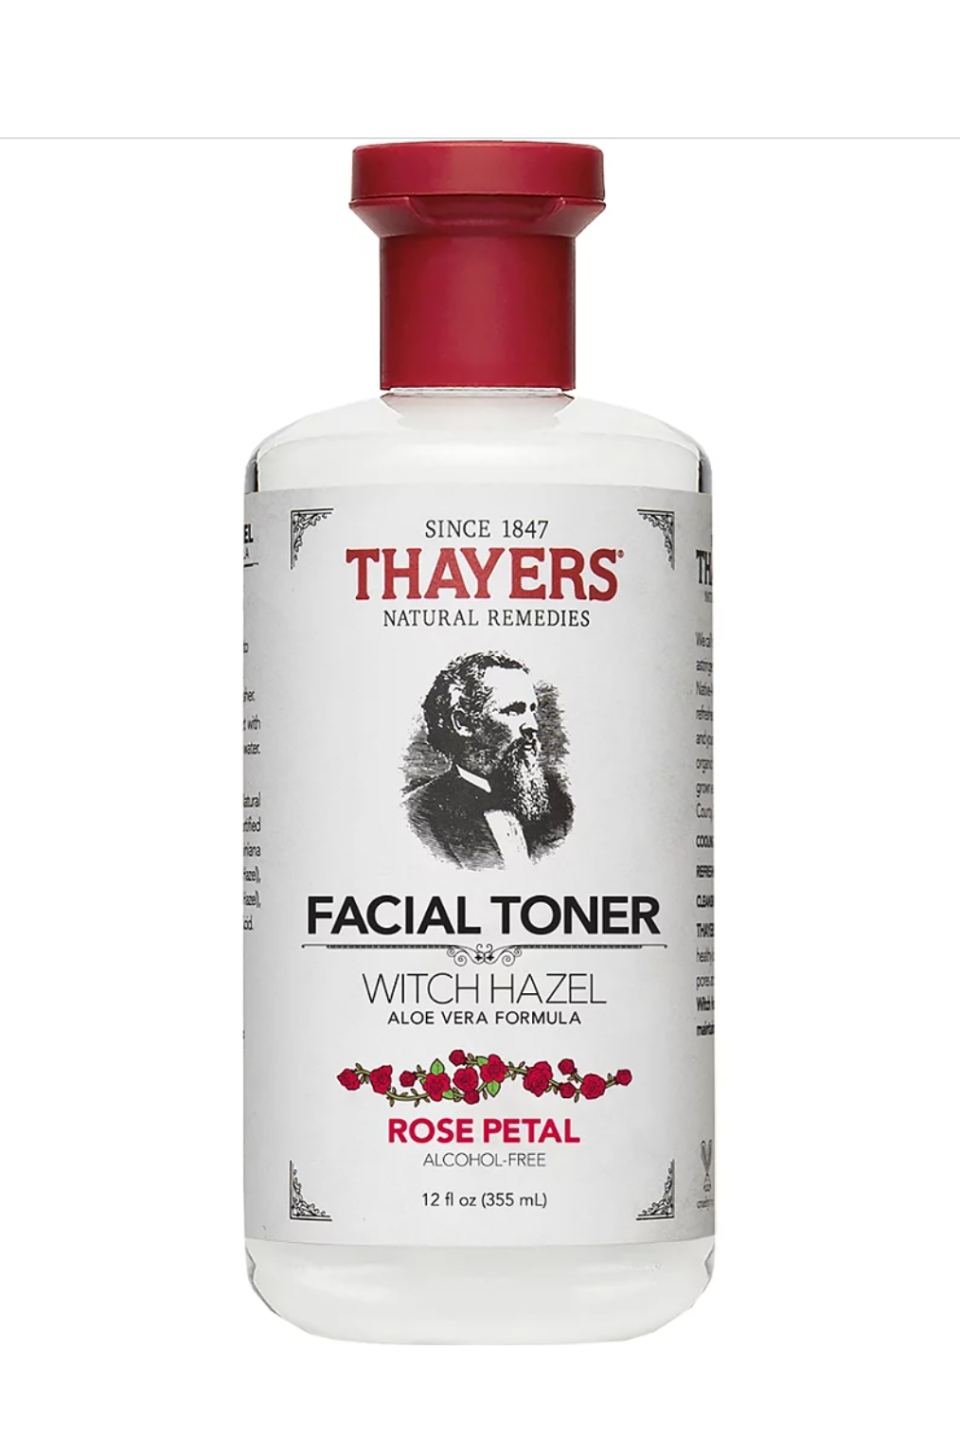 "<p><strong>Thayers</strong></p><p>ulta.com</p><p><a href=""https://go.redirectingat.com?id=74968X1596630&url=https%3A%2F%2Fwww.ulta.com%2Falcohol-free-witch-hazel-facial-toner%3FproductId%3Dpimprod2006476&sref=https%3A%2F%2Fwww.marieclaire.com%2Fbeauty%2Fg32999443%2Fulta-fourth-of-july-sale-2020%2F"" rel=""nofollow noopener"" target=""_blank"" data-ylk=""slk:SHOP IT"" class=""link rapid-noclick-resp"">SHOP IT </a></p><p><del>$10.95</del><strong><br>$8.21</strong><br></p><p>There's a reason why Thayers' witch hazel facial toner is a must-have for beauty buffs. Infused with aloe vera, this option simultaneously cleanses the skin and removes dry, flaky patches. </p>"